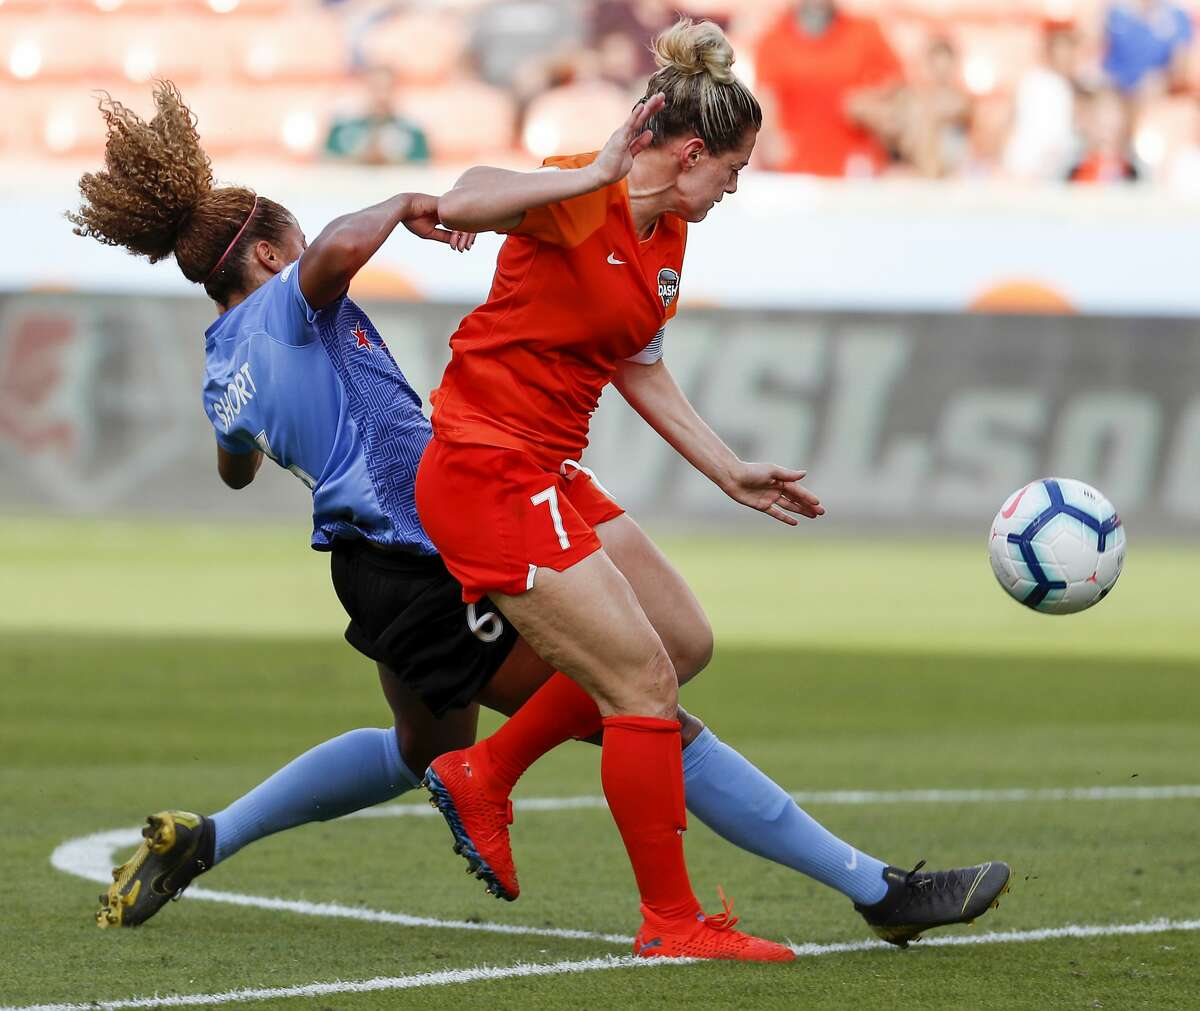 Houston Dash forward Kealia Ohai (7) fights with Chicago Red Stars defender Casey Short (6) for a control of a ball during the second half of a National Women's Soccer League match at BBVA Compass Stadium on Sunday, May 19, 2019, in Houston. The Red Stars beat the Dash 2-1.